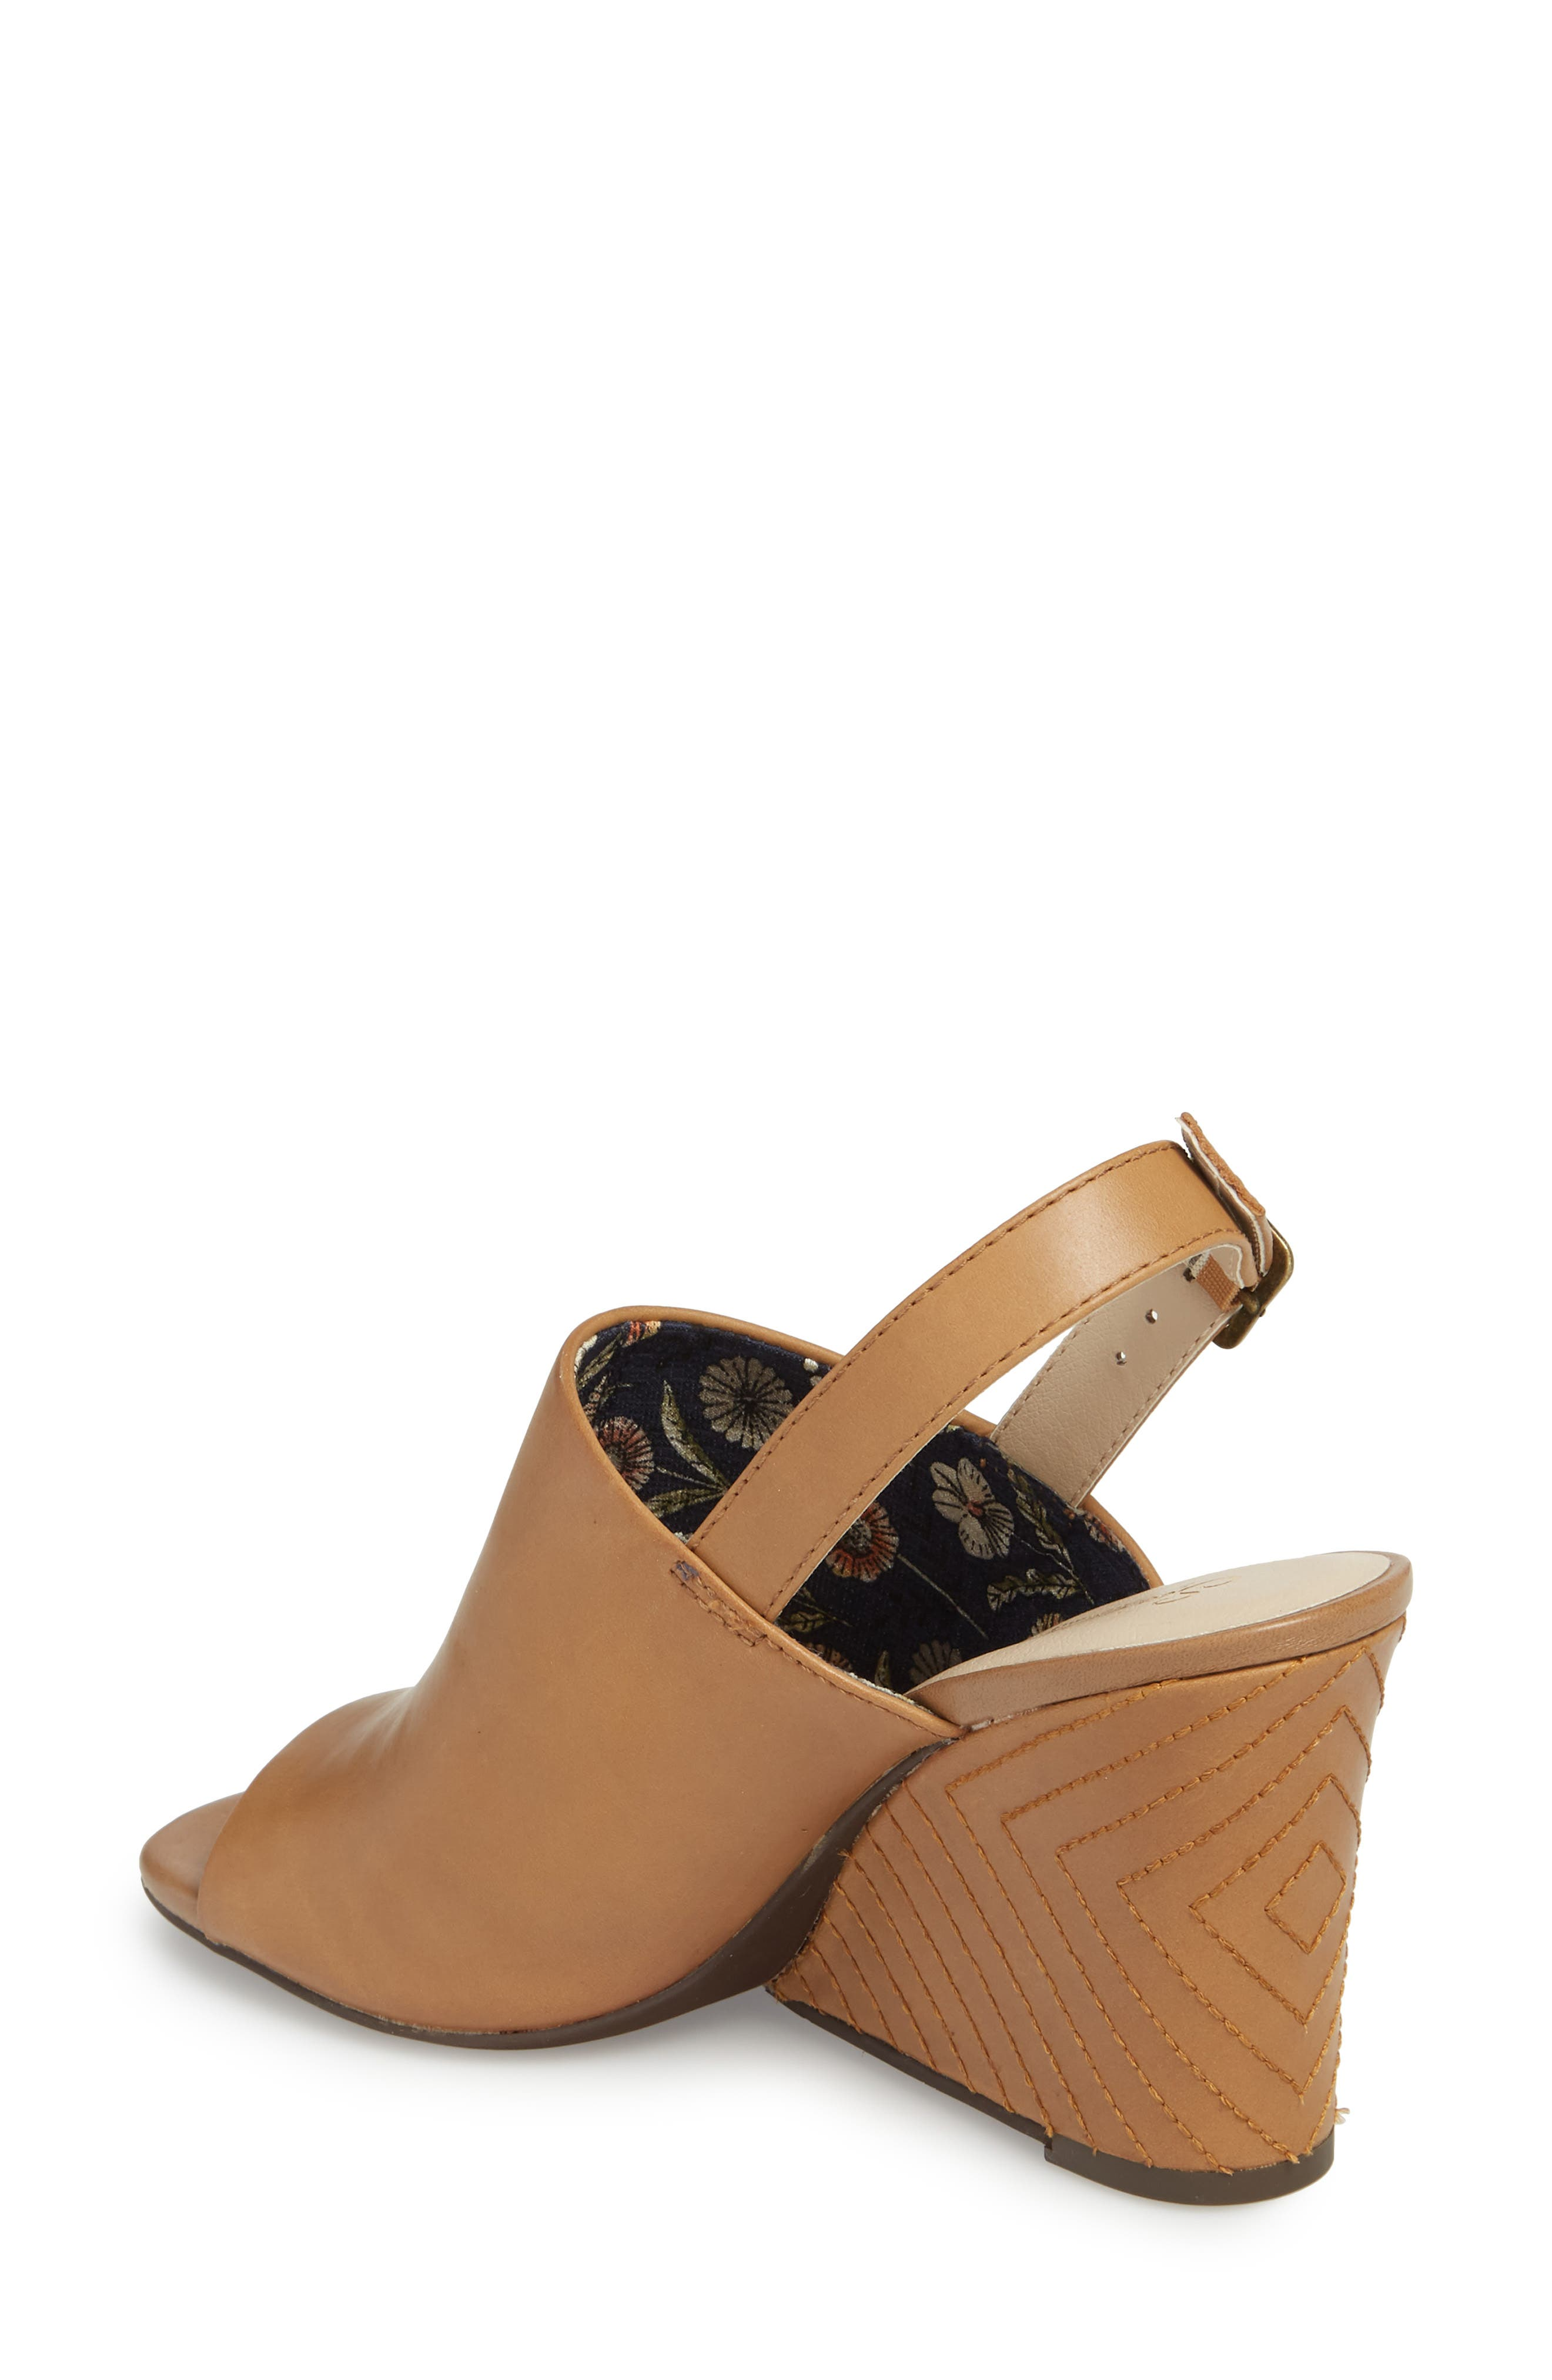 Abyssal Wedge Sandal,                             Alternate thumbnail 2, color,                             TAN LEATHER